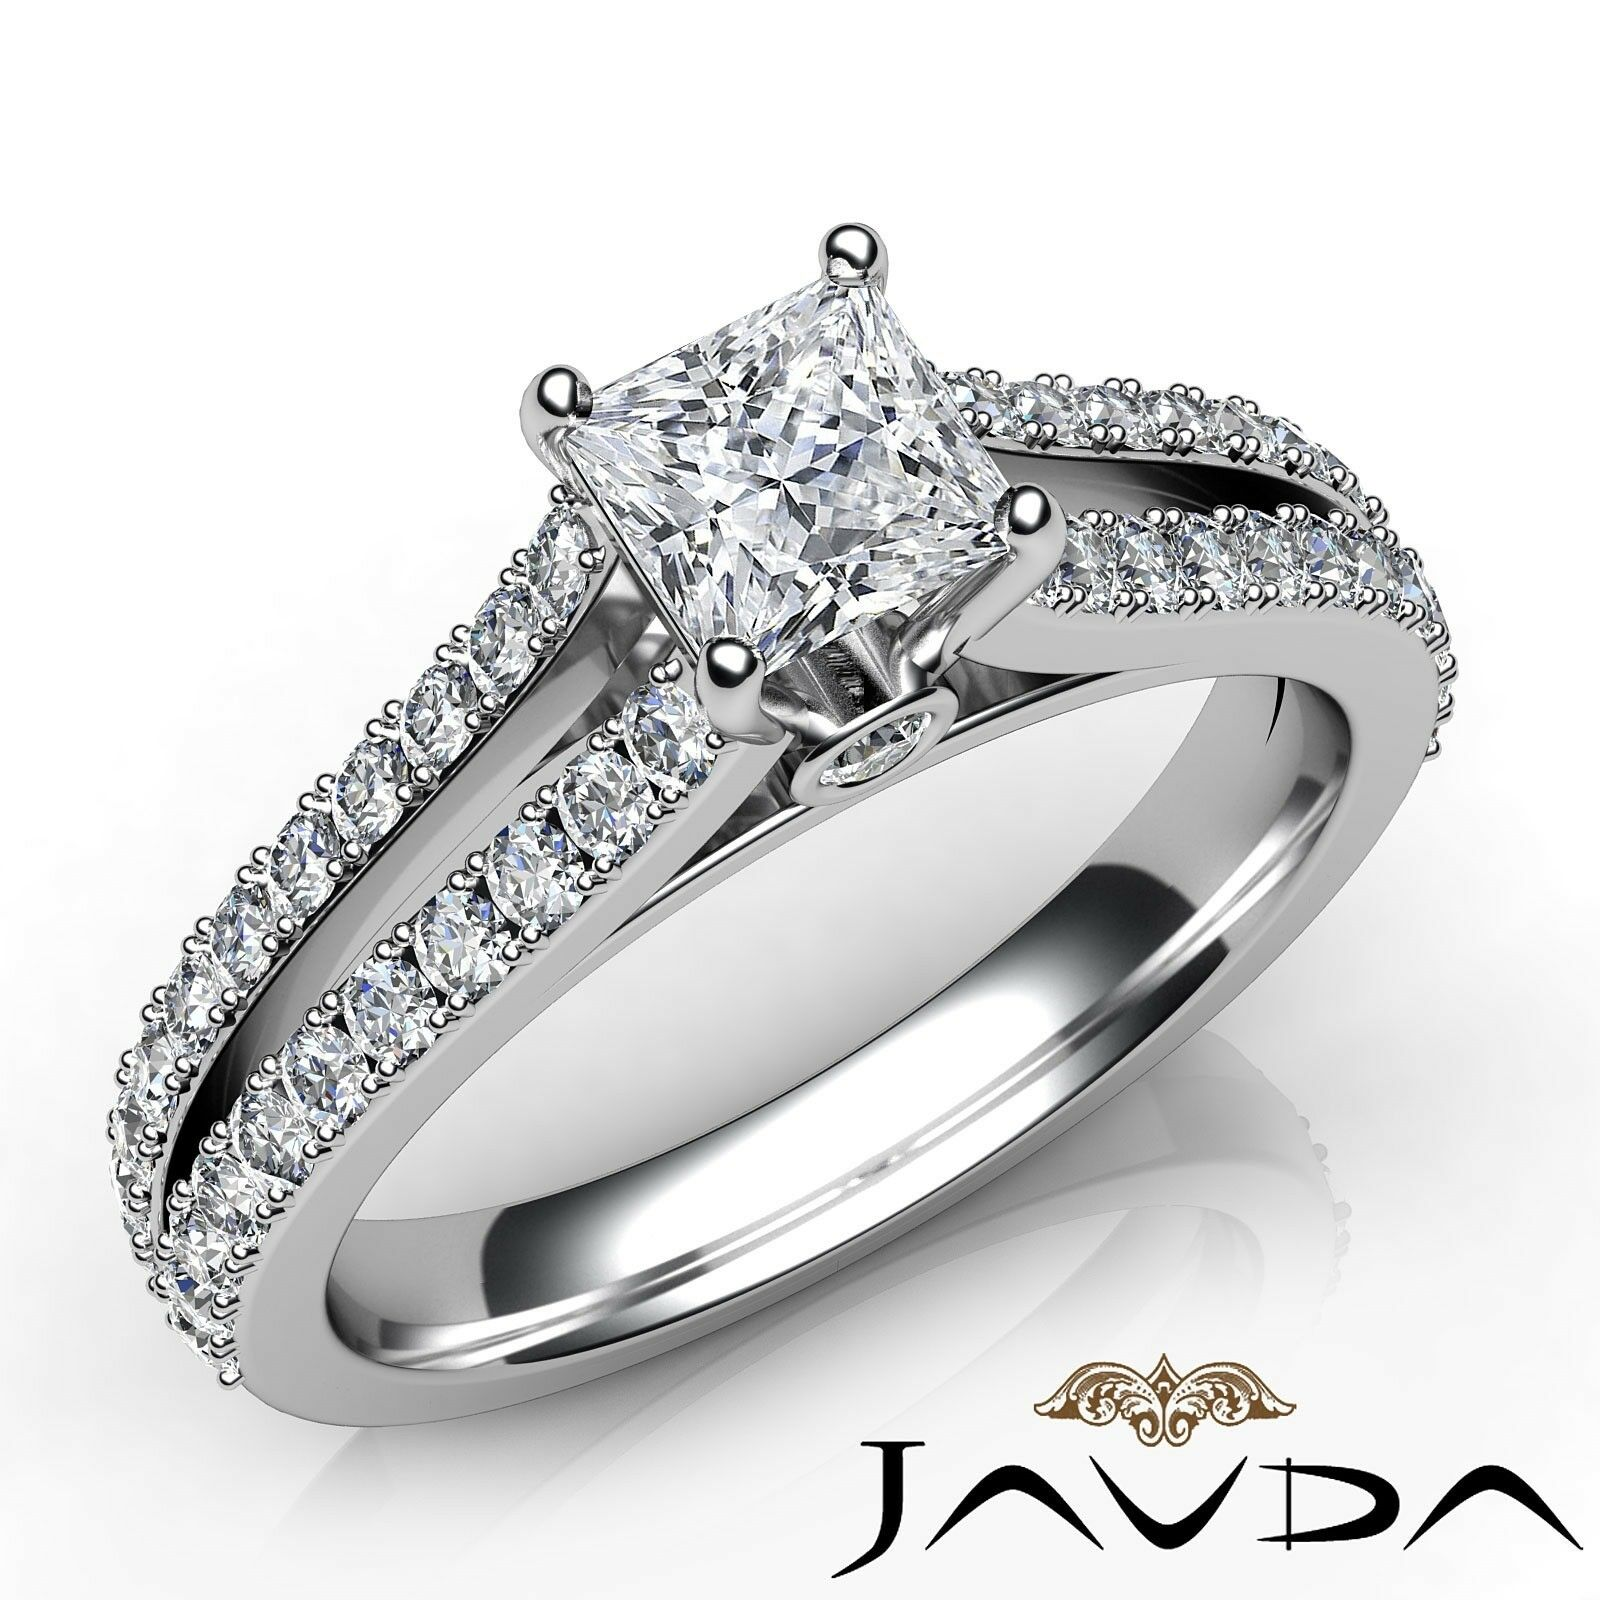 1.35ctw Split Prong Princess Diamond Engagement Ring GIA D-SI1 White Gold Rings